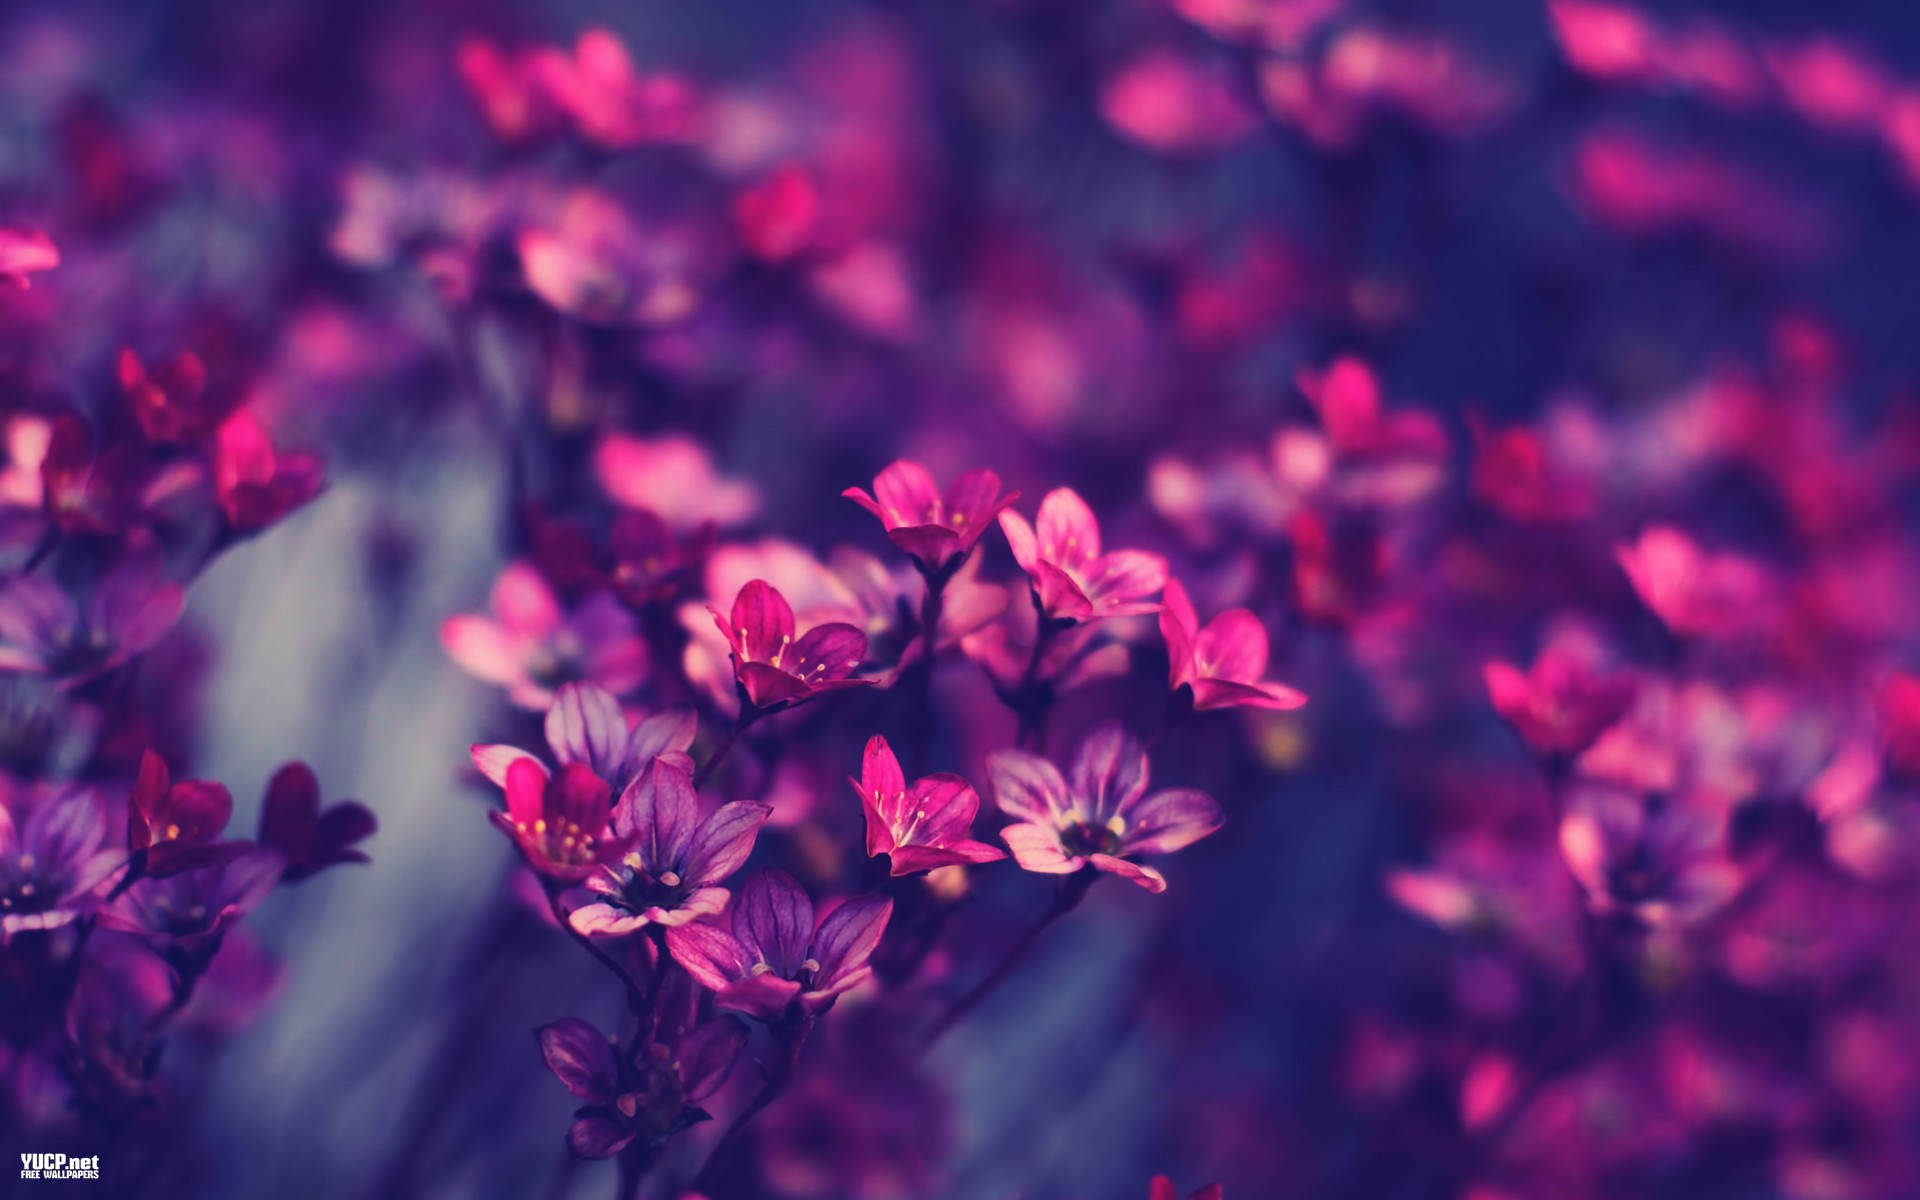 Vintage Flowers Wallpaper Free Download